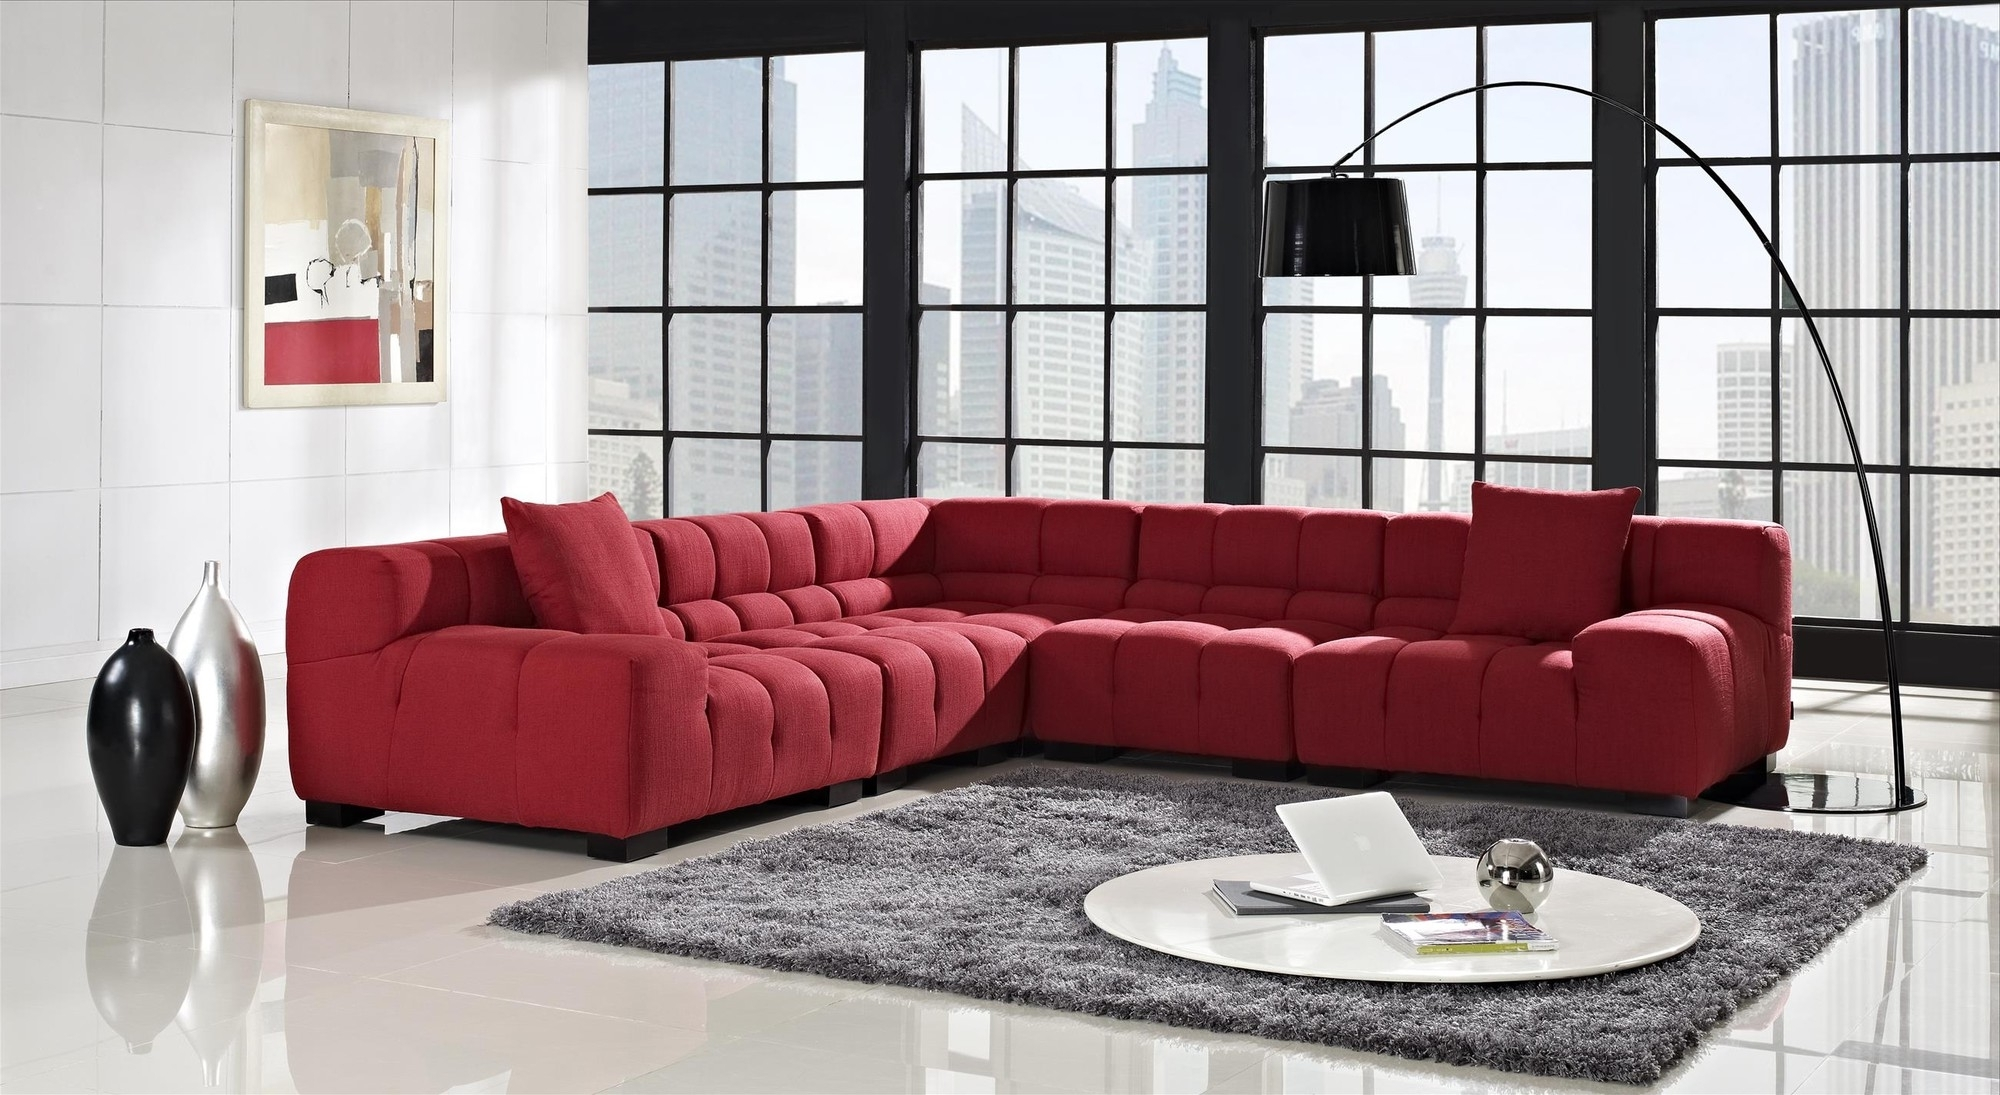 Fashionable Leather Modular Sectional Sofas With Regard To Furniture Awesome Modular Sectionals Sofas Hi Res Wallpaper Photos (View 4 of 15)